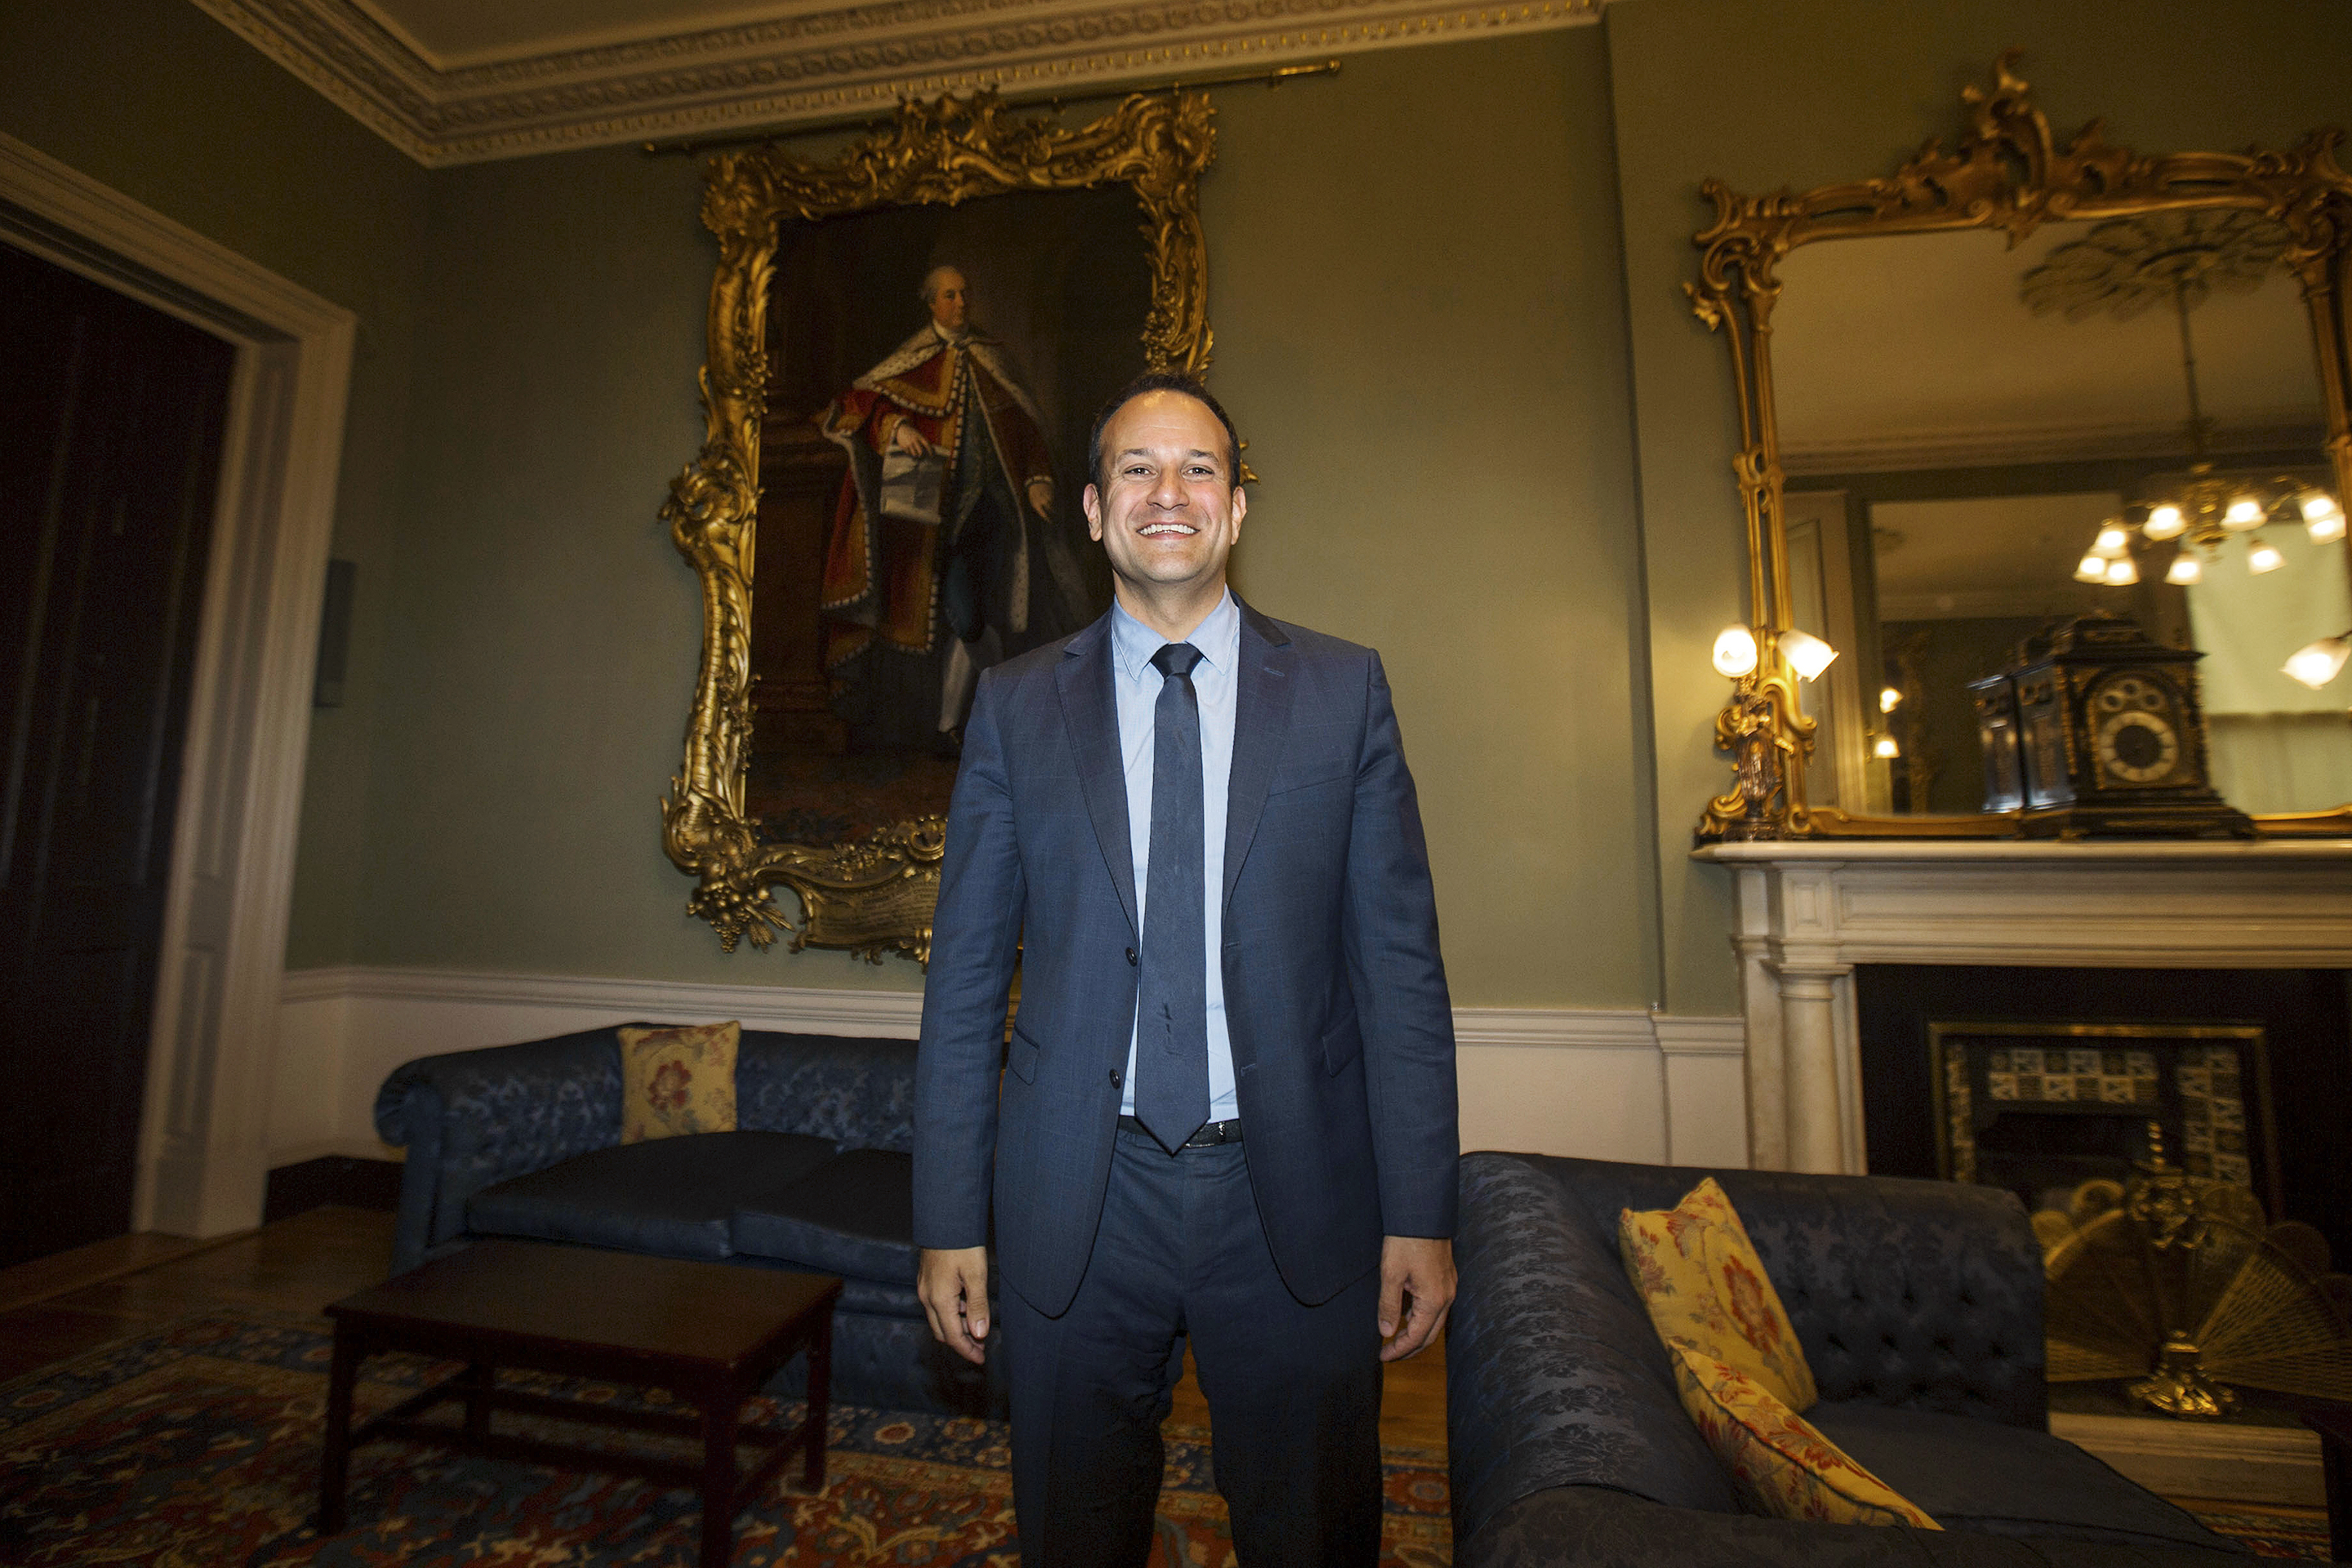 Leo Varadkar is an Irish Fine Gael politician. Following the retirement of Enda Kenny, he was elected as Leader of the Fine Gael Party on 2 June 2017.